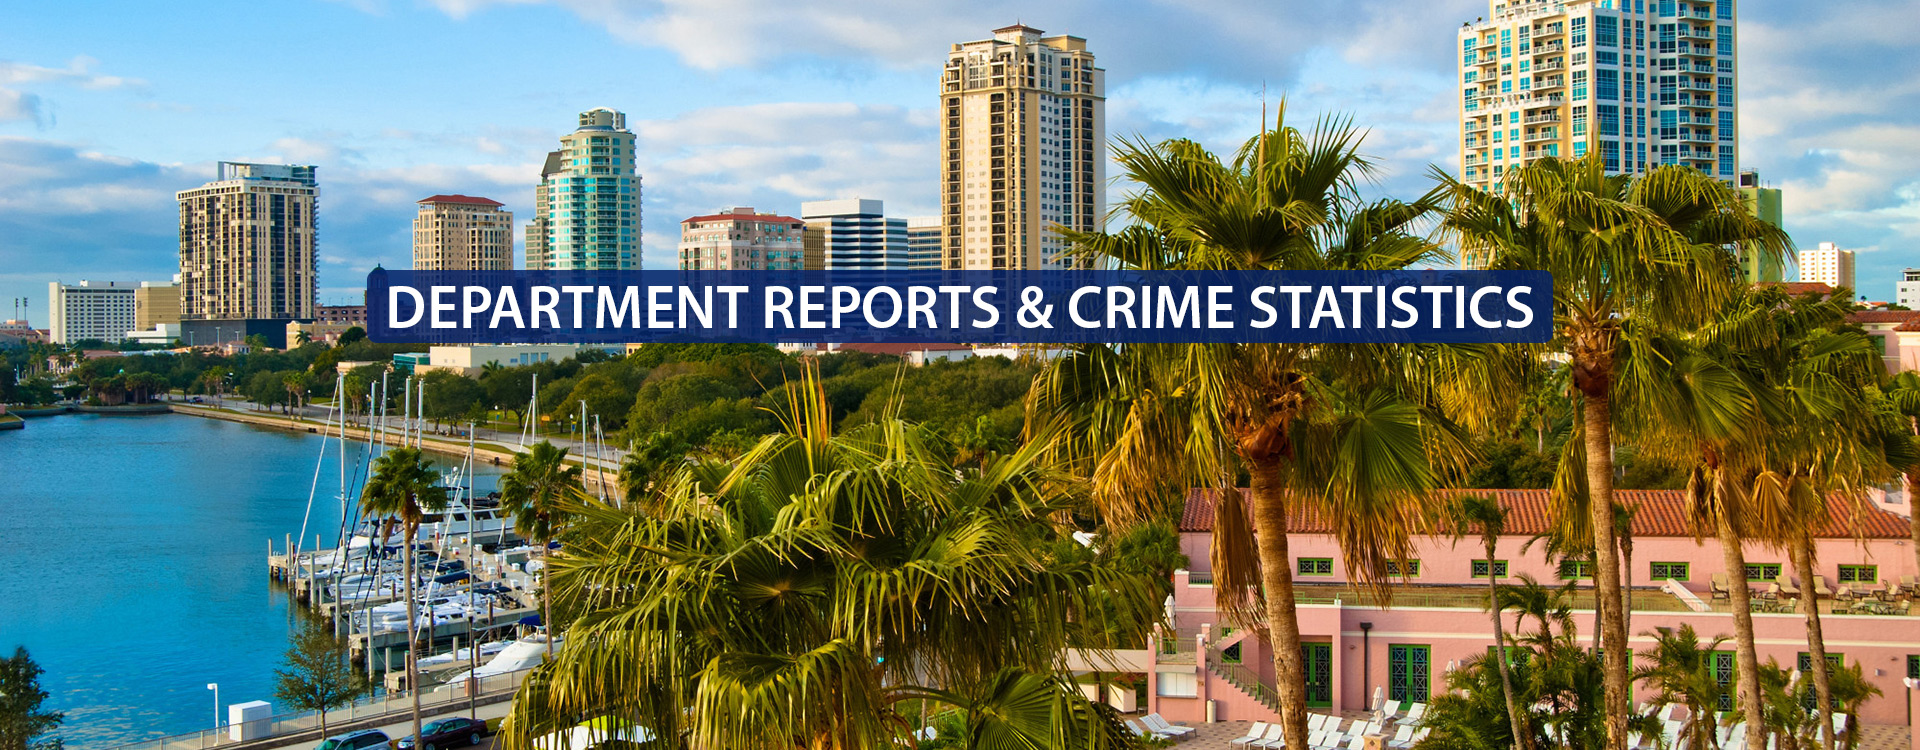 Department Reports and Crime Statistics